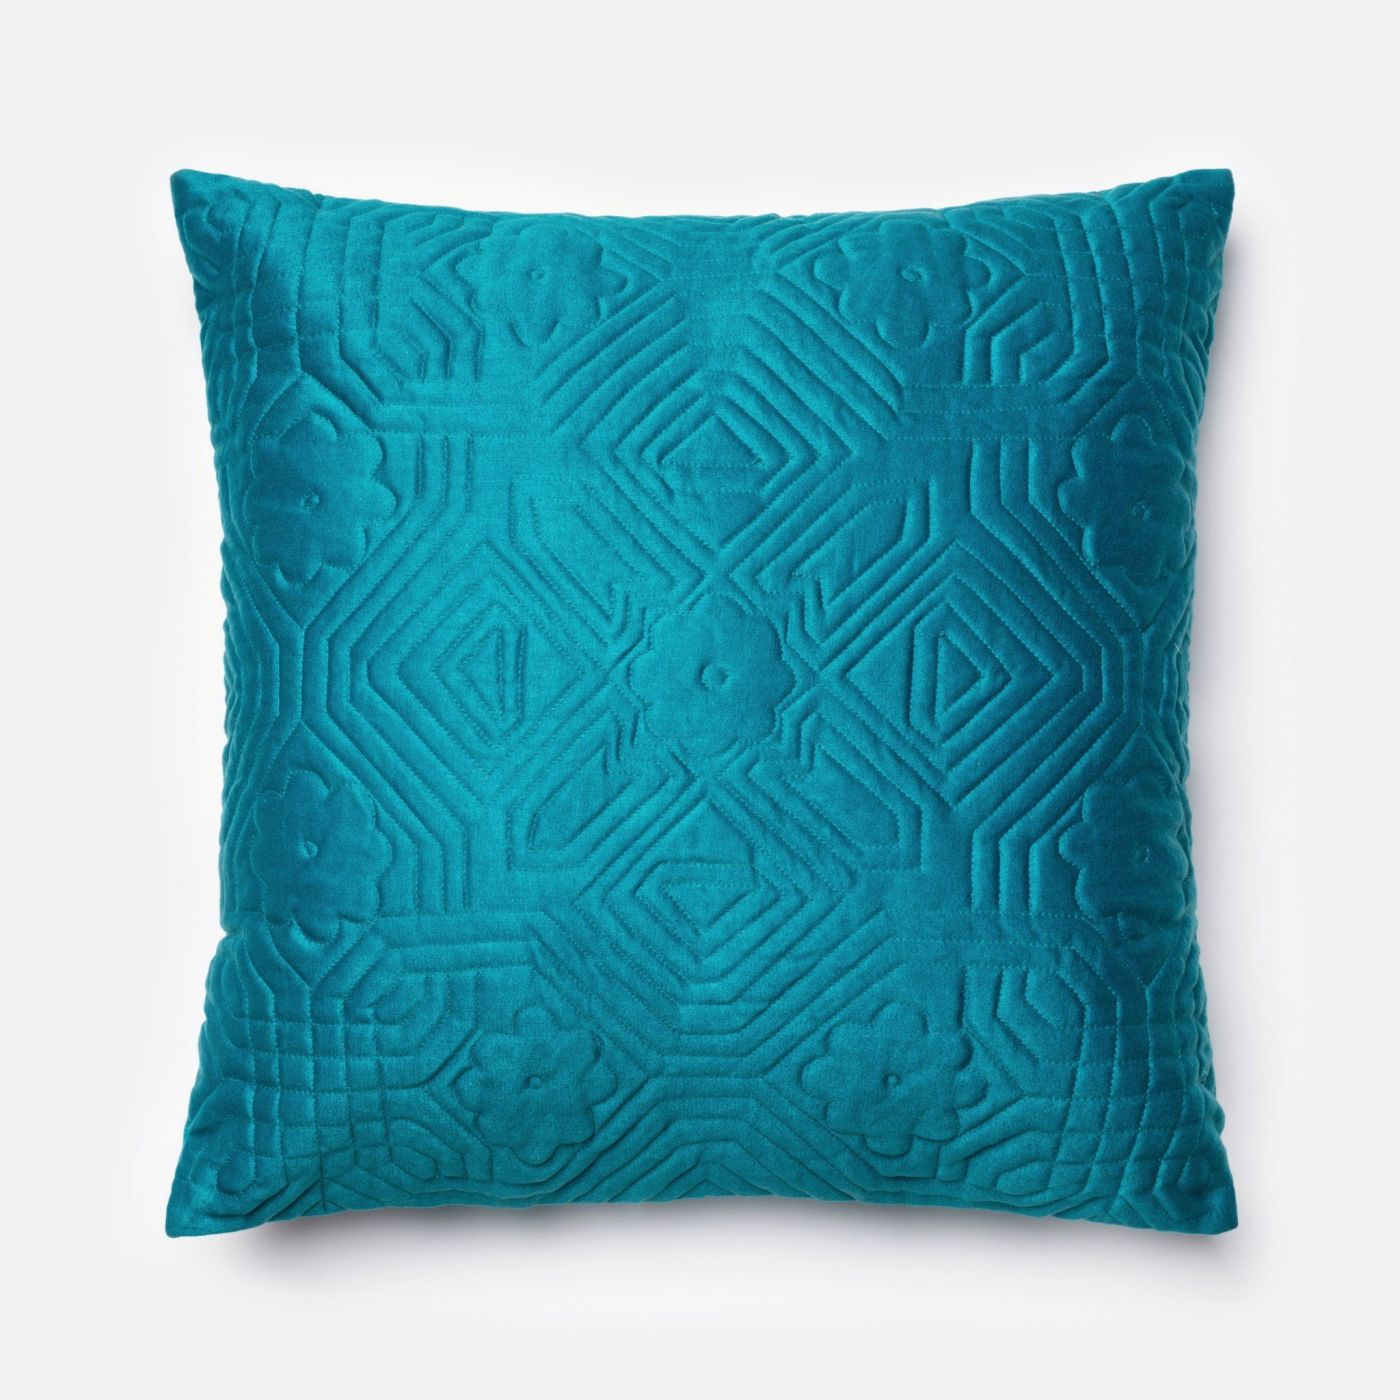 Throw Pillow Warehouse : Loloi Rugs Loloi Teal Decorative Throw Pillow (P0016) PSETP0016TE00PIL3. Only $59.00 at ...